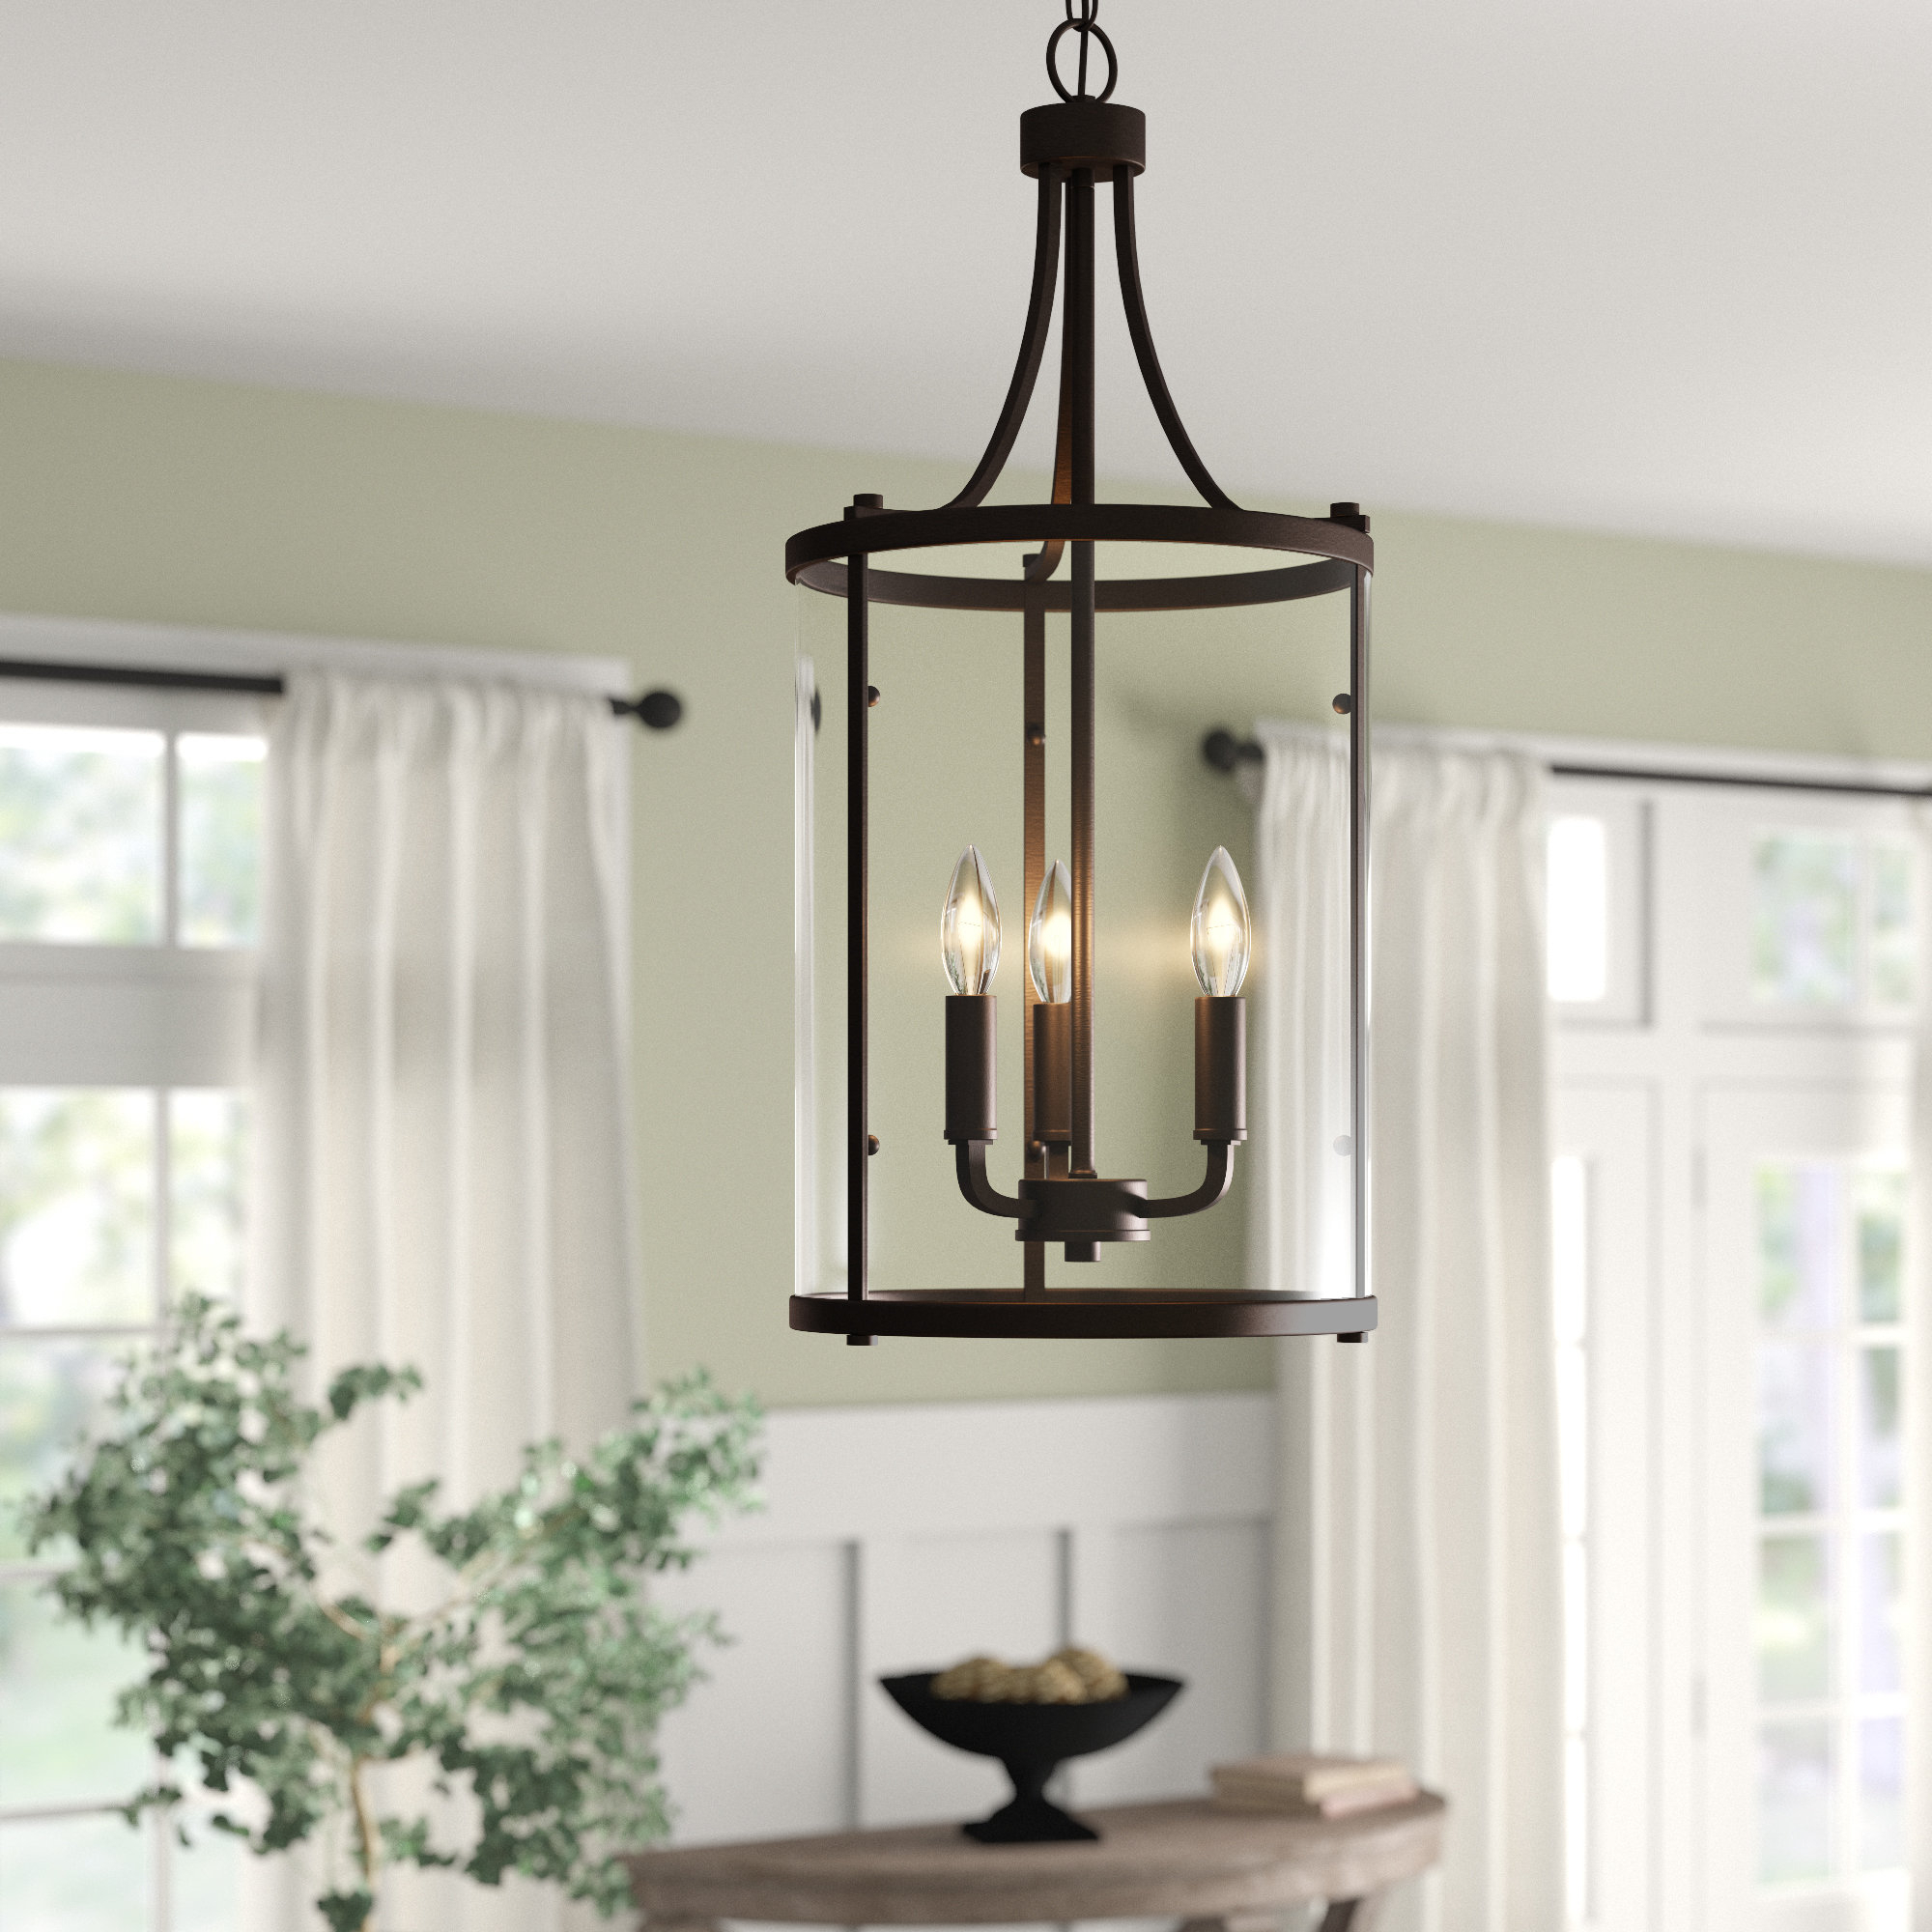 Armande 3 Light Pendant | Wayfair regarding Armande 3-Light Lantern Geometric Pendants (Image 4 of 30)